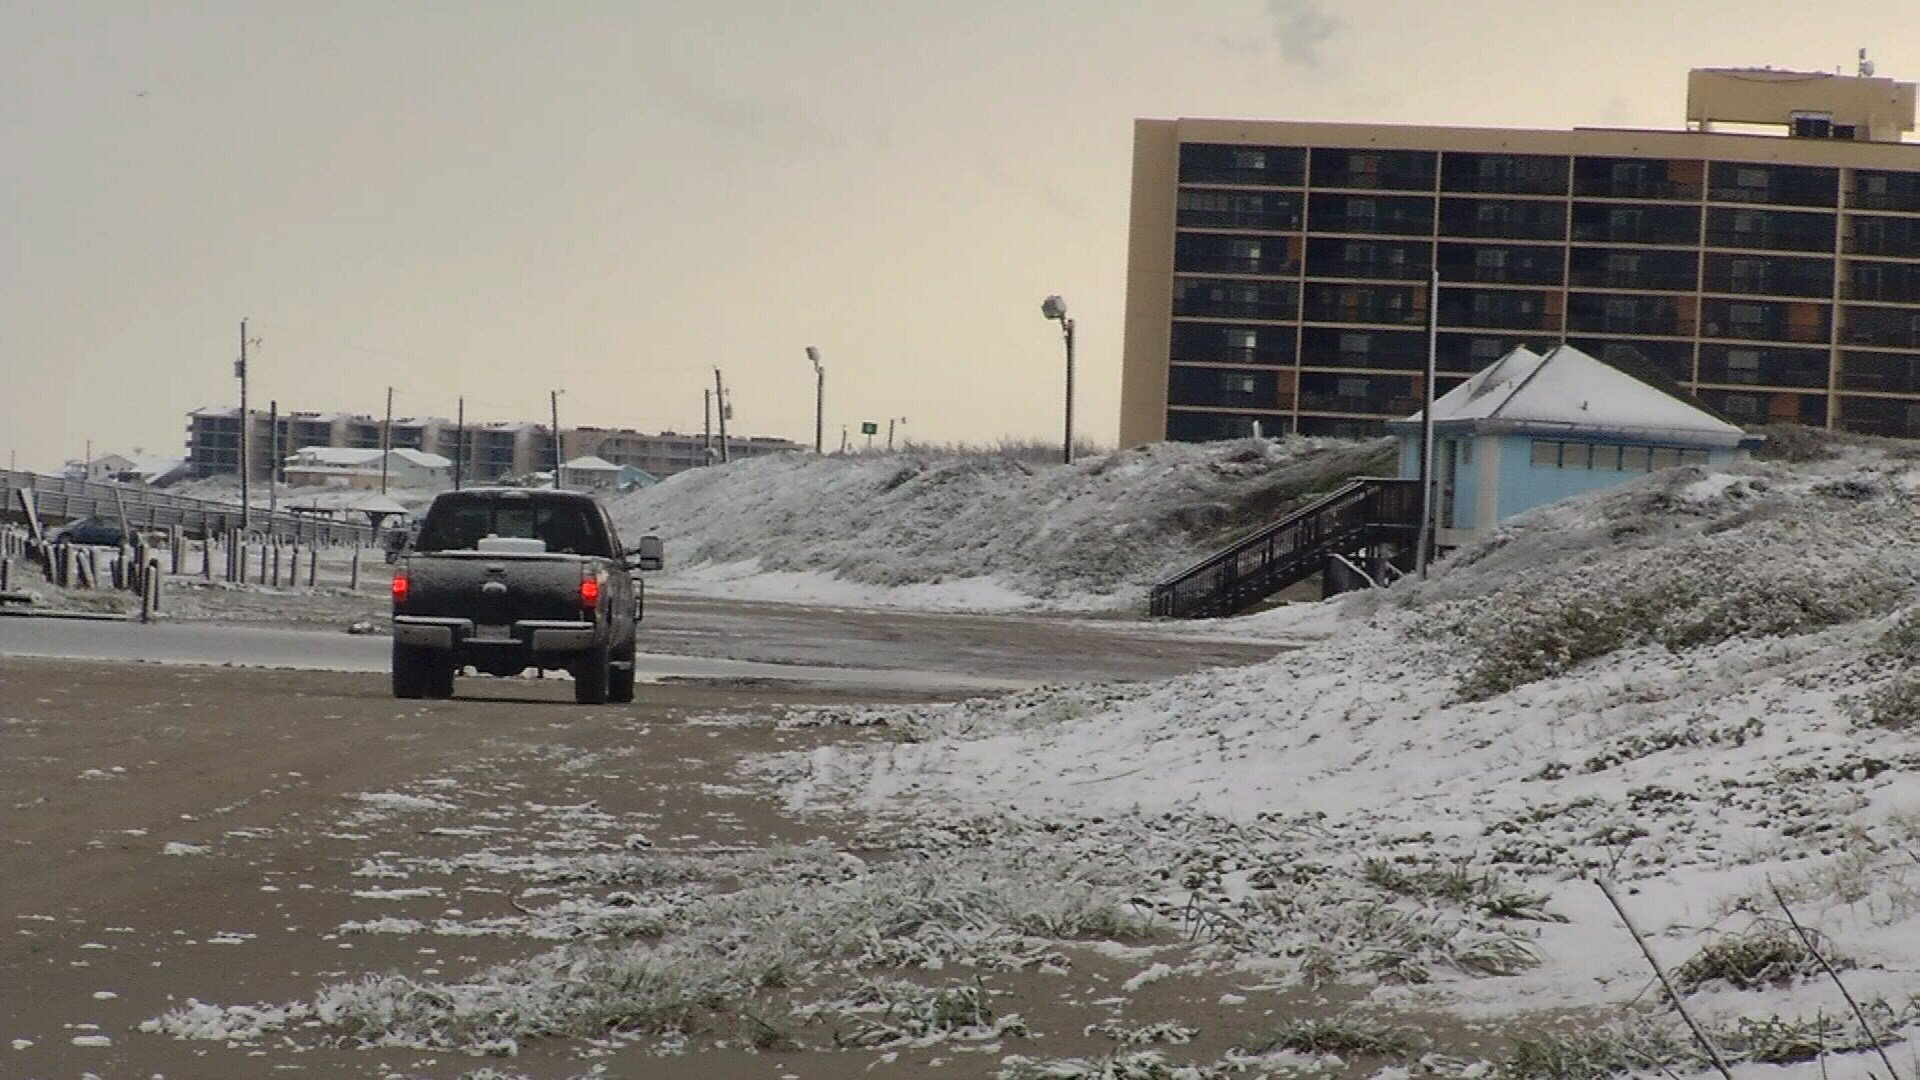 Snow covered portions of the beach in Port Aransas.